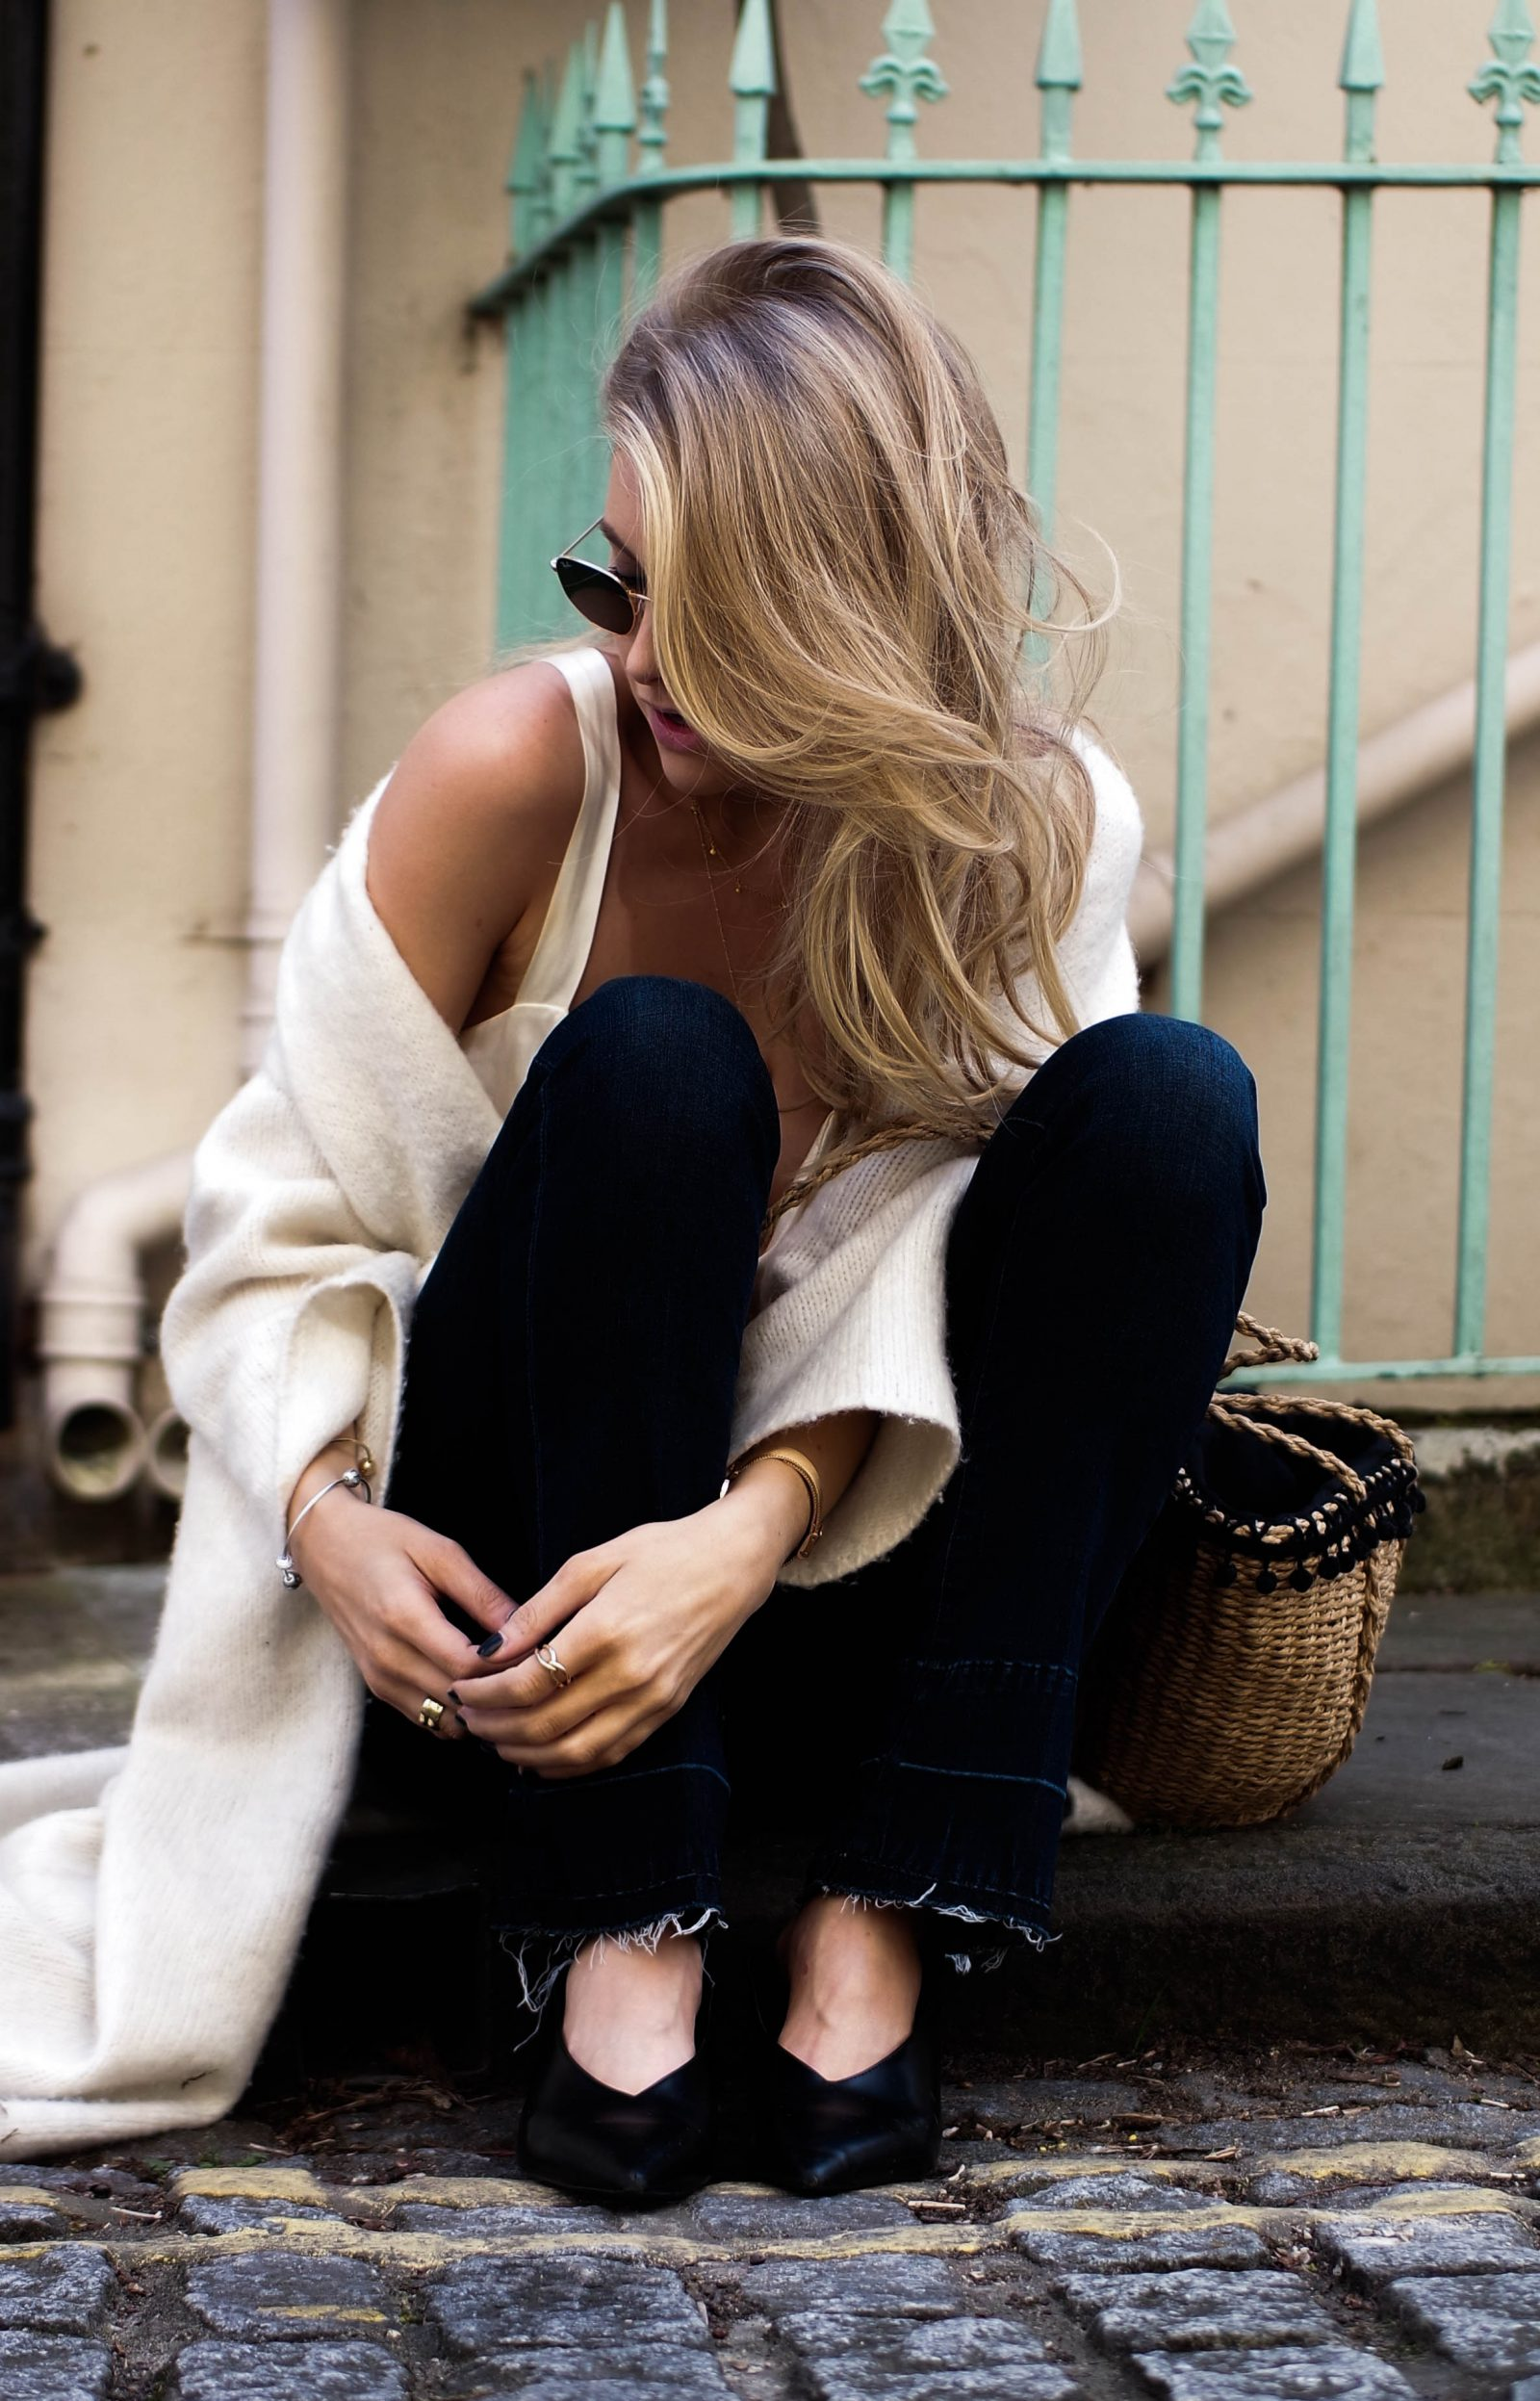 The New Denim - How To Wear Flares - Fashion Blogger Spring Style